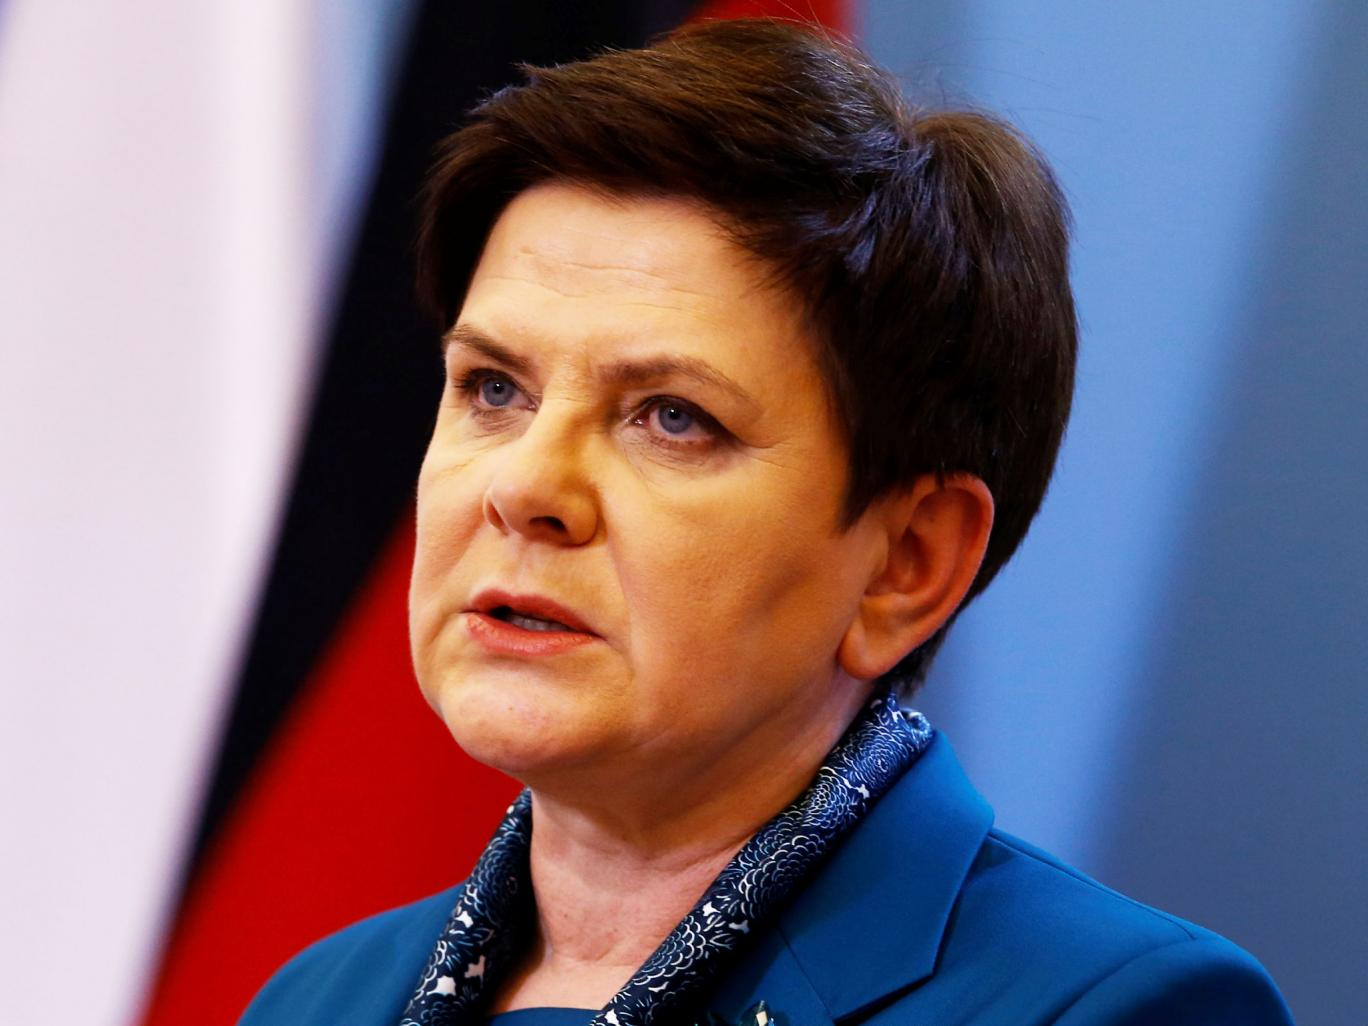 Poland's Prime Minister says country will accept no refugees as EU threatens legal action over quotas